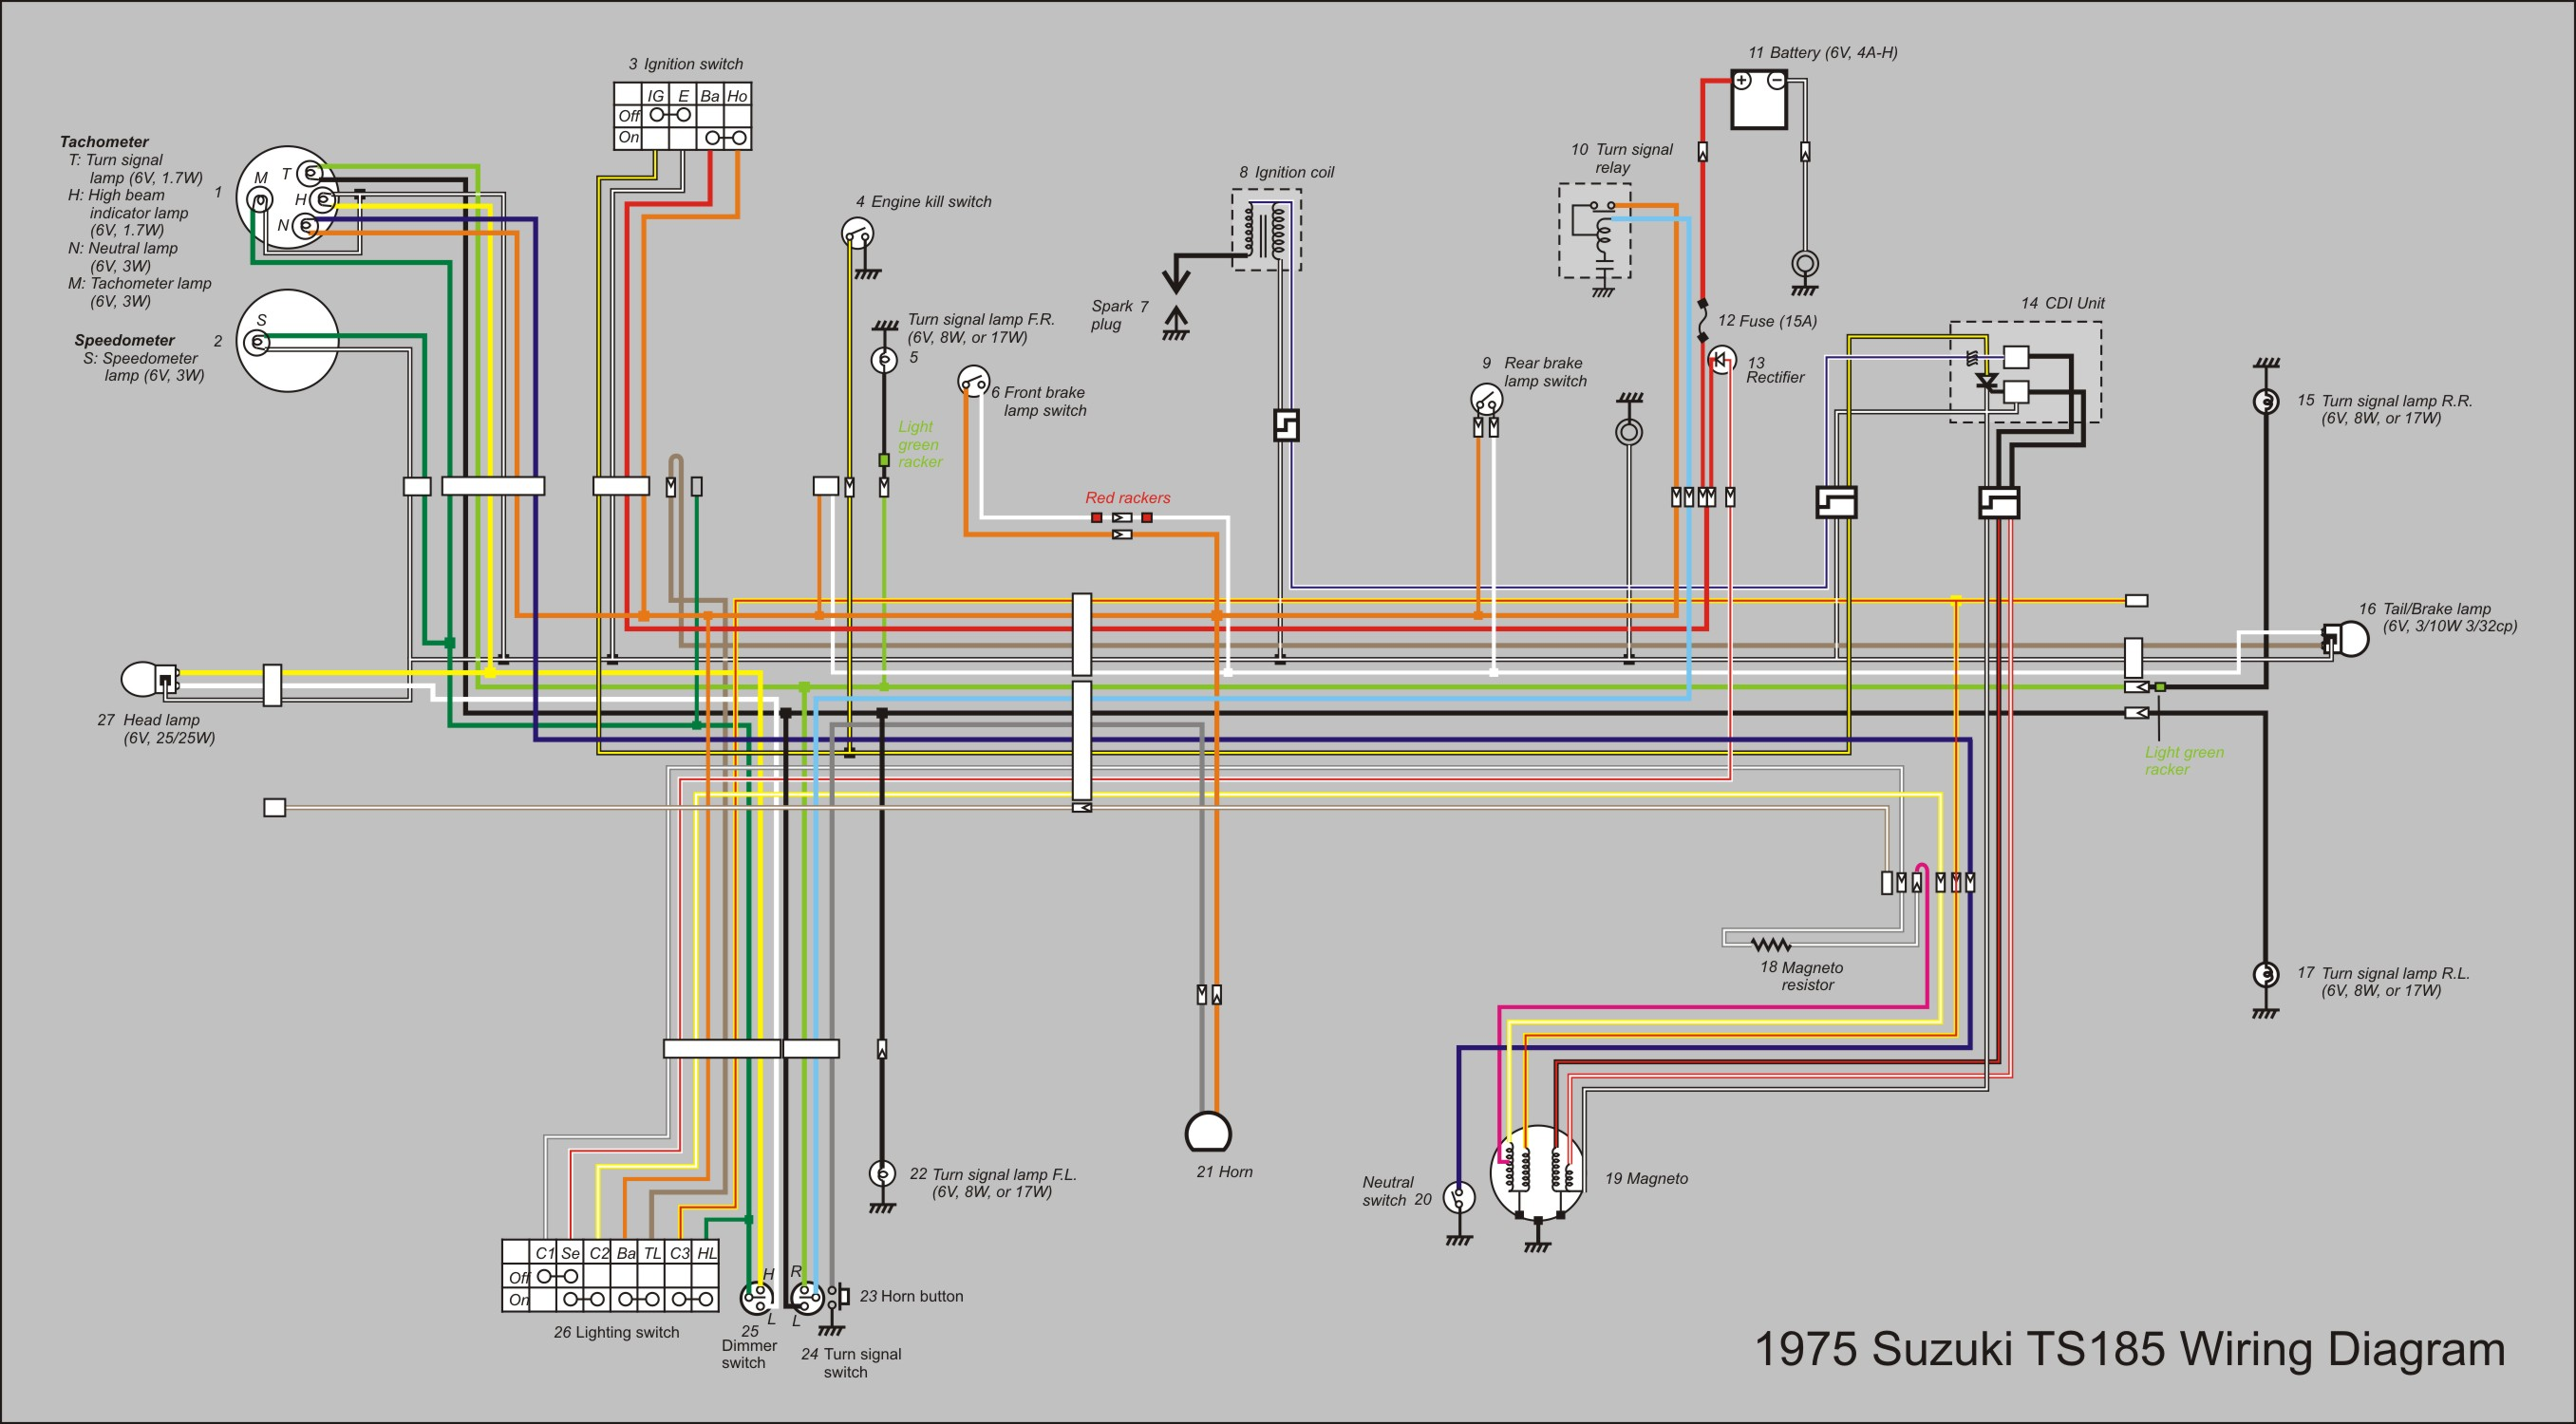 File:TS185 Wiring Diagram new.jpg - Wikimedia Commons